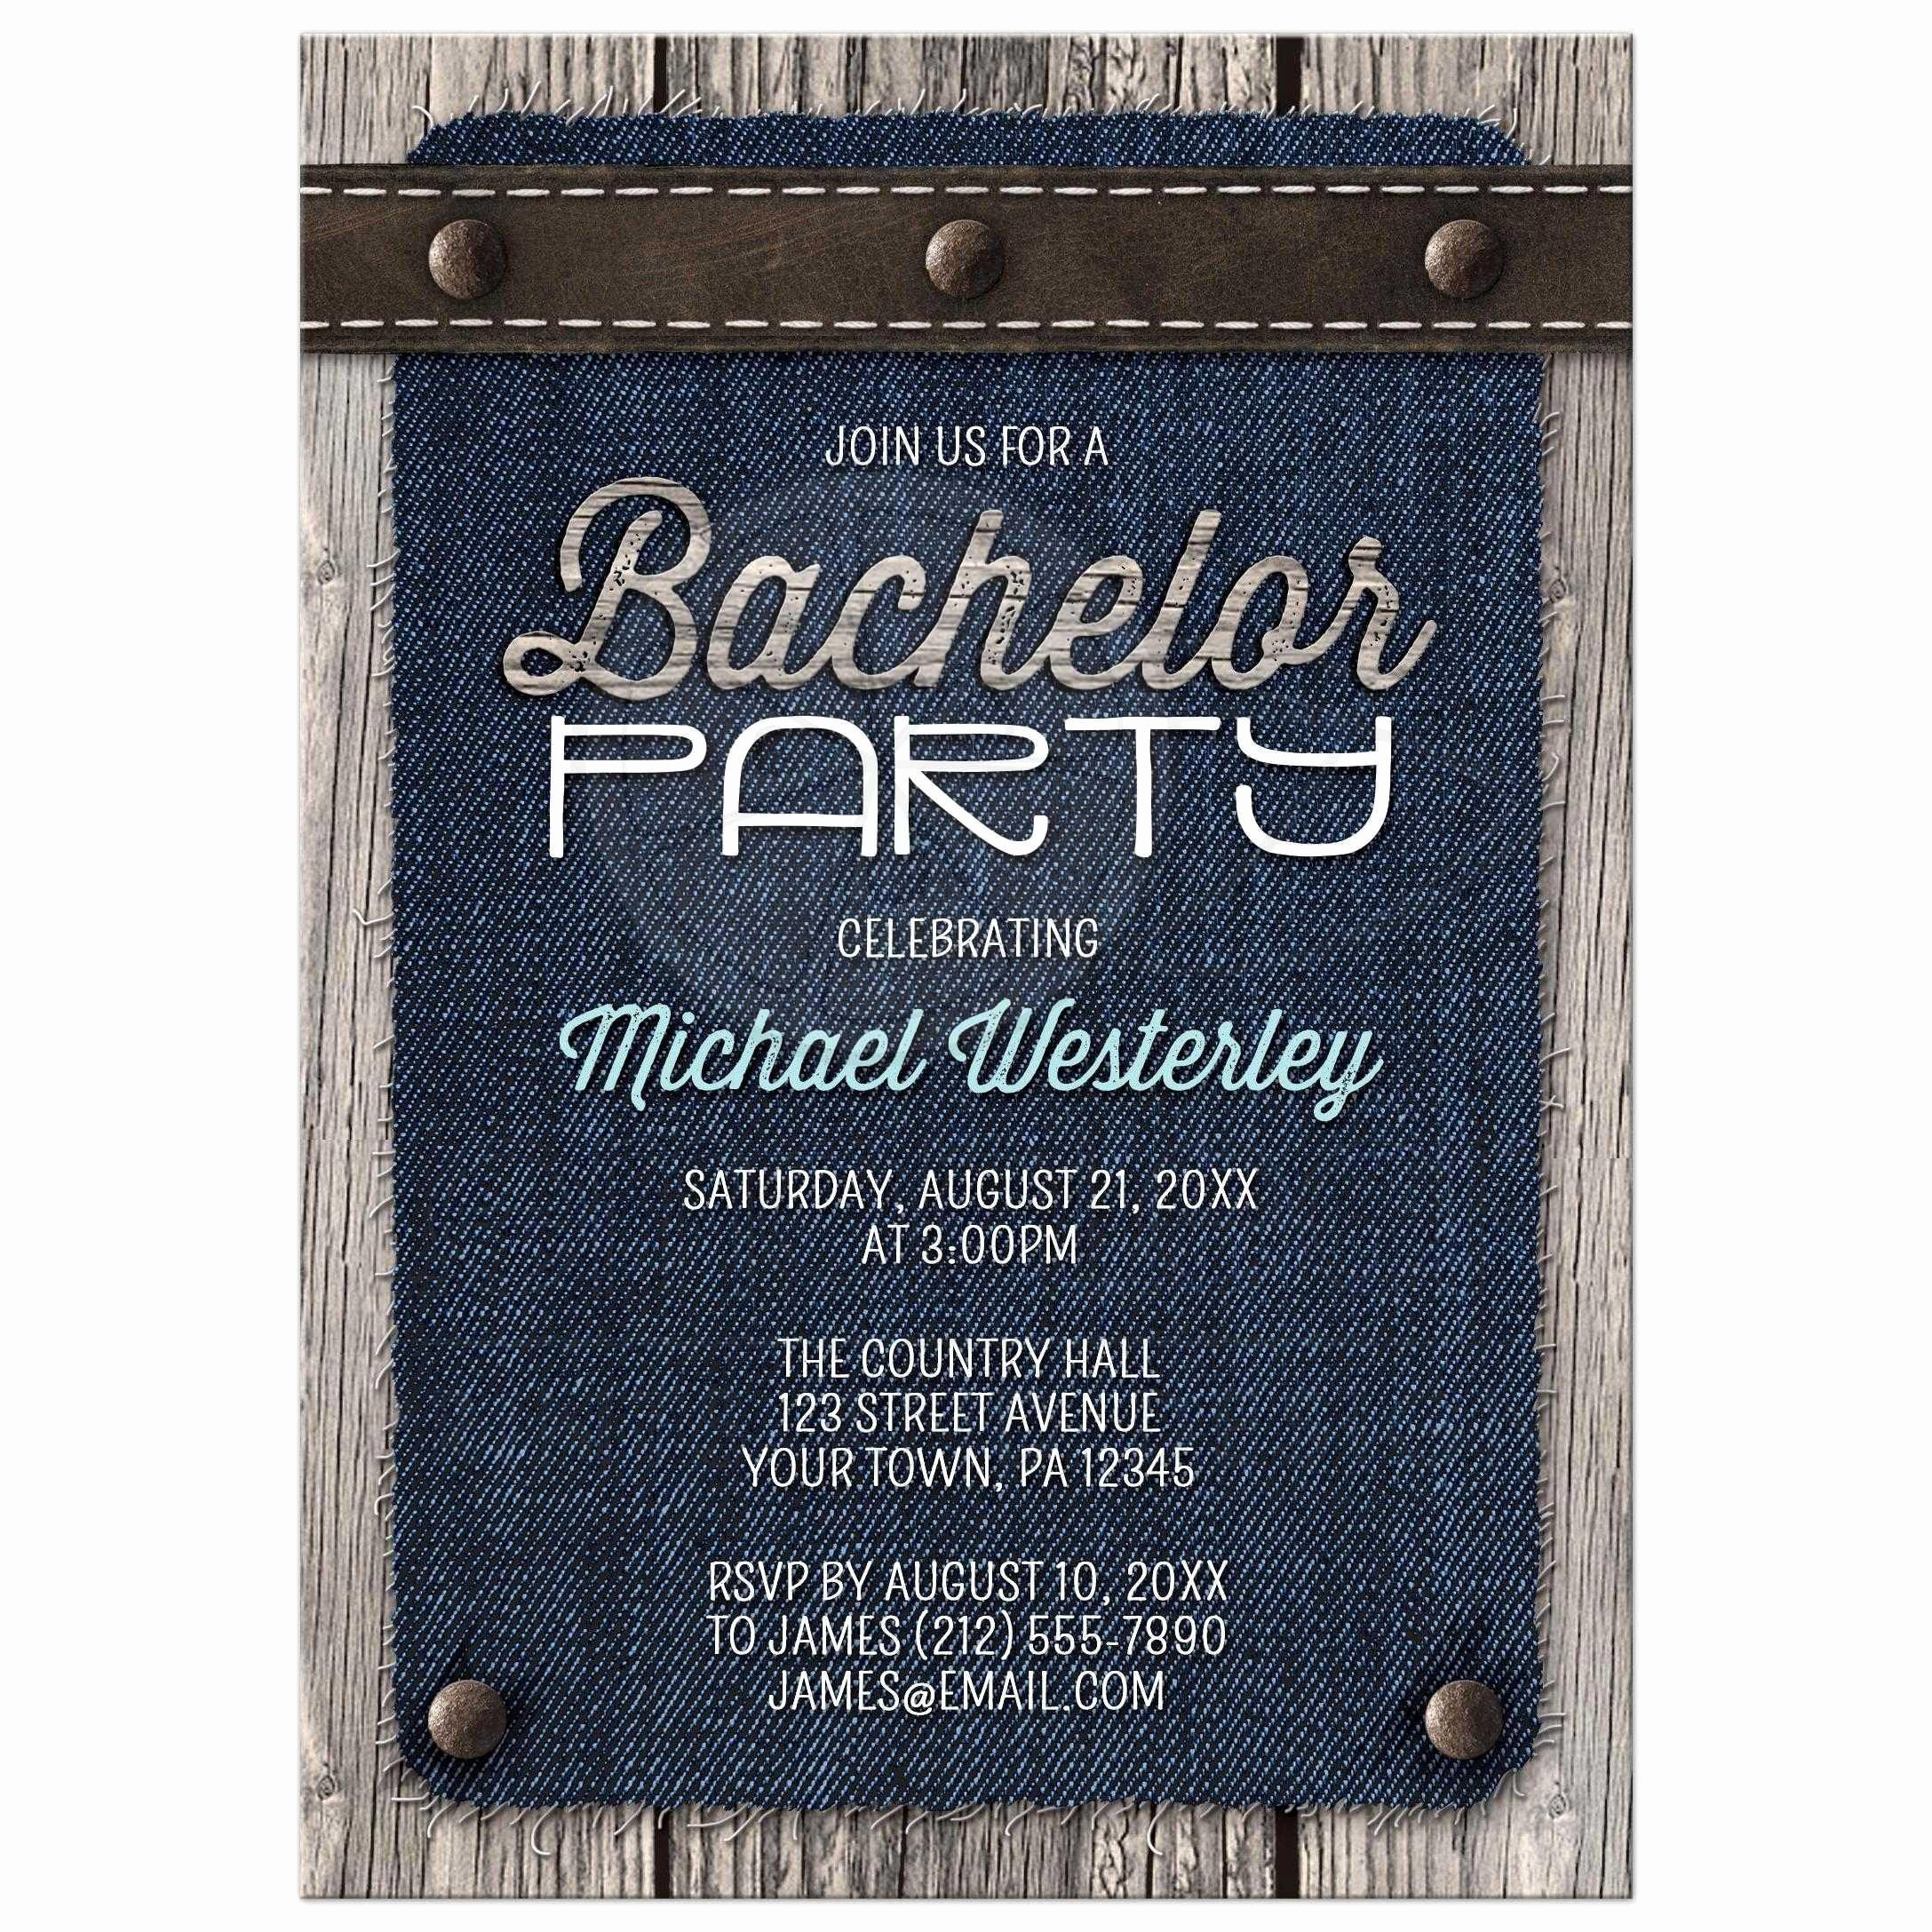 Bachelors Party Invitation Template Lovely Bachelor Party Invitations